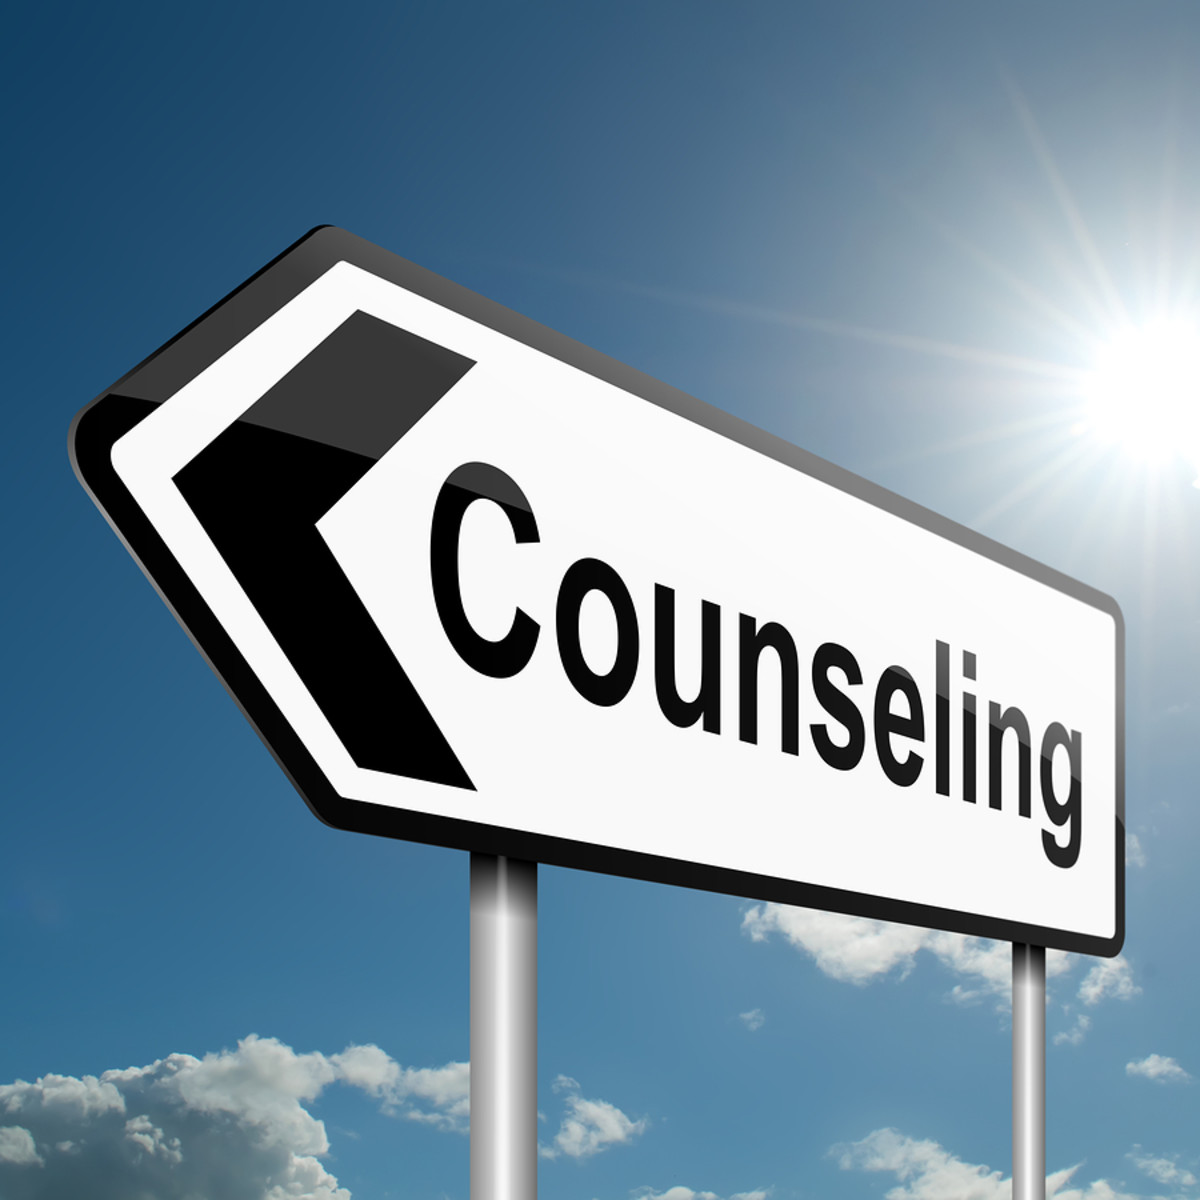 How to Pass the NCE and CPCE Counseling Exams